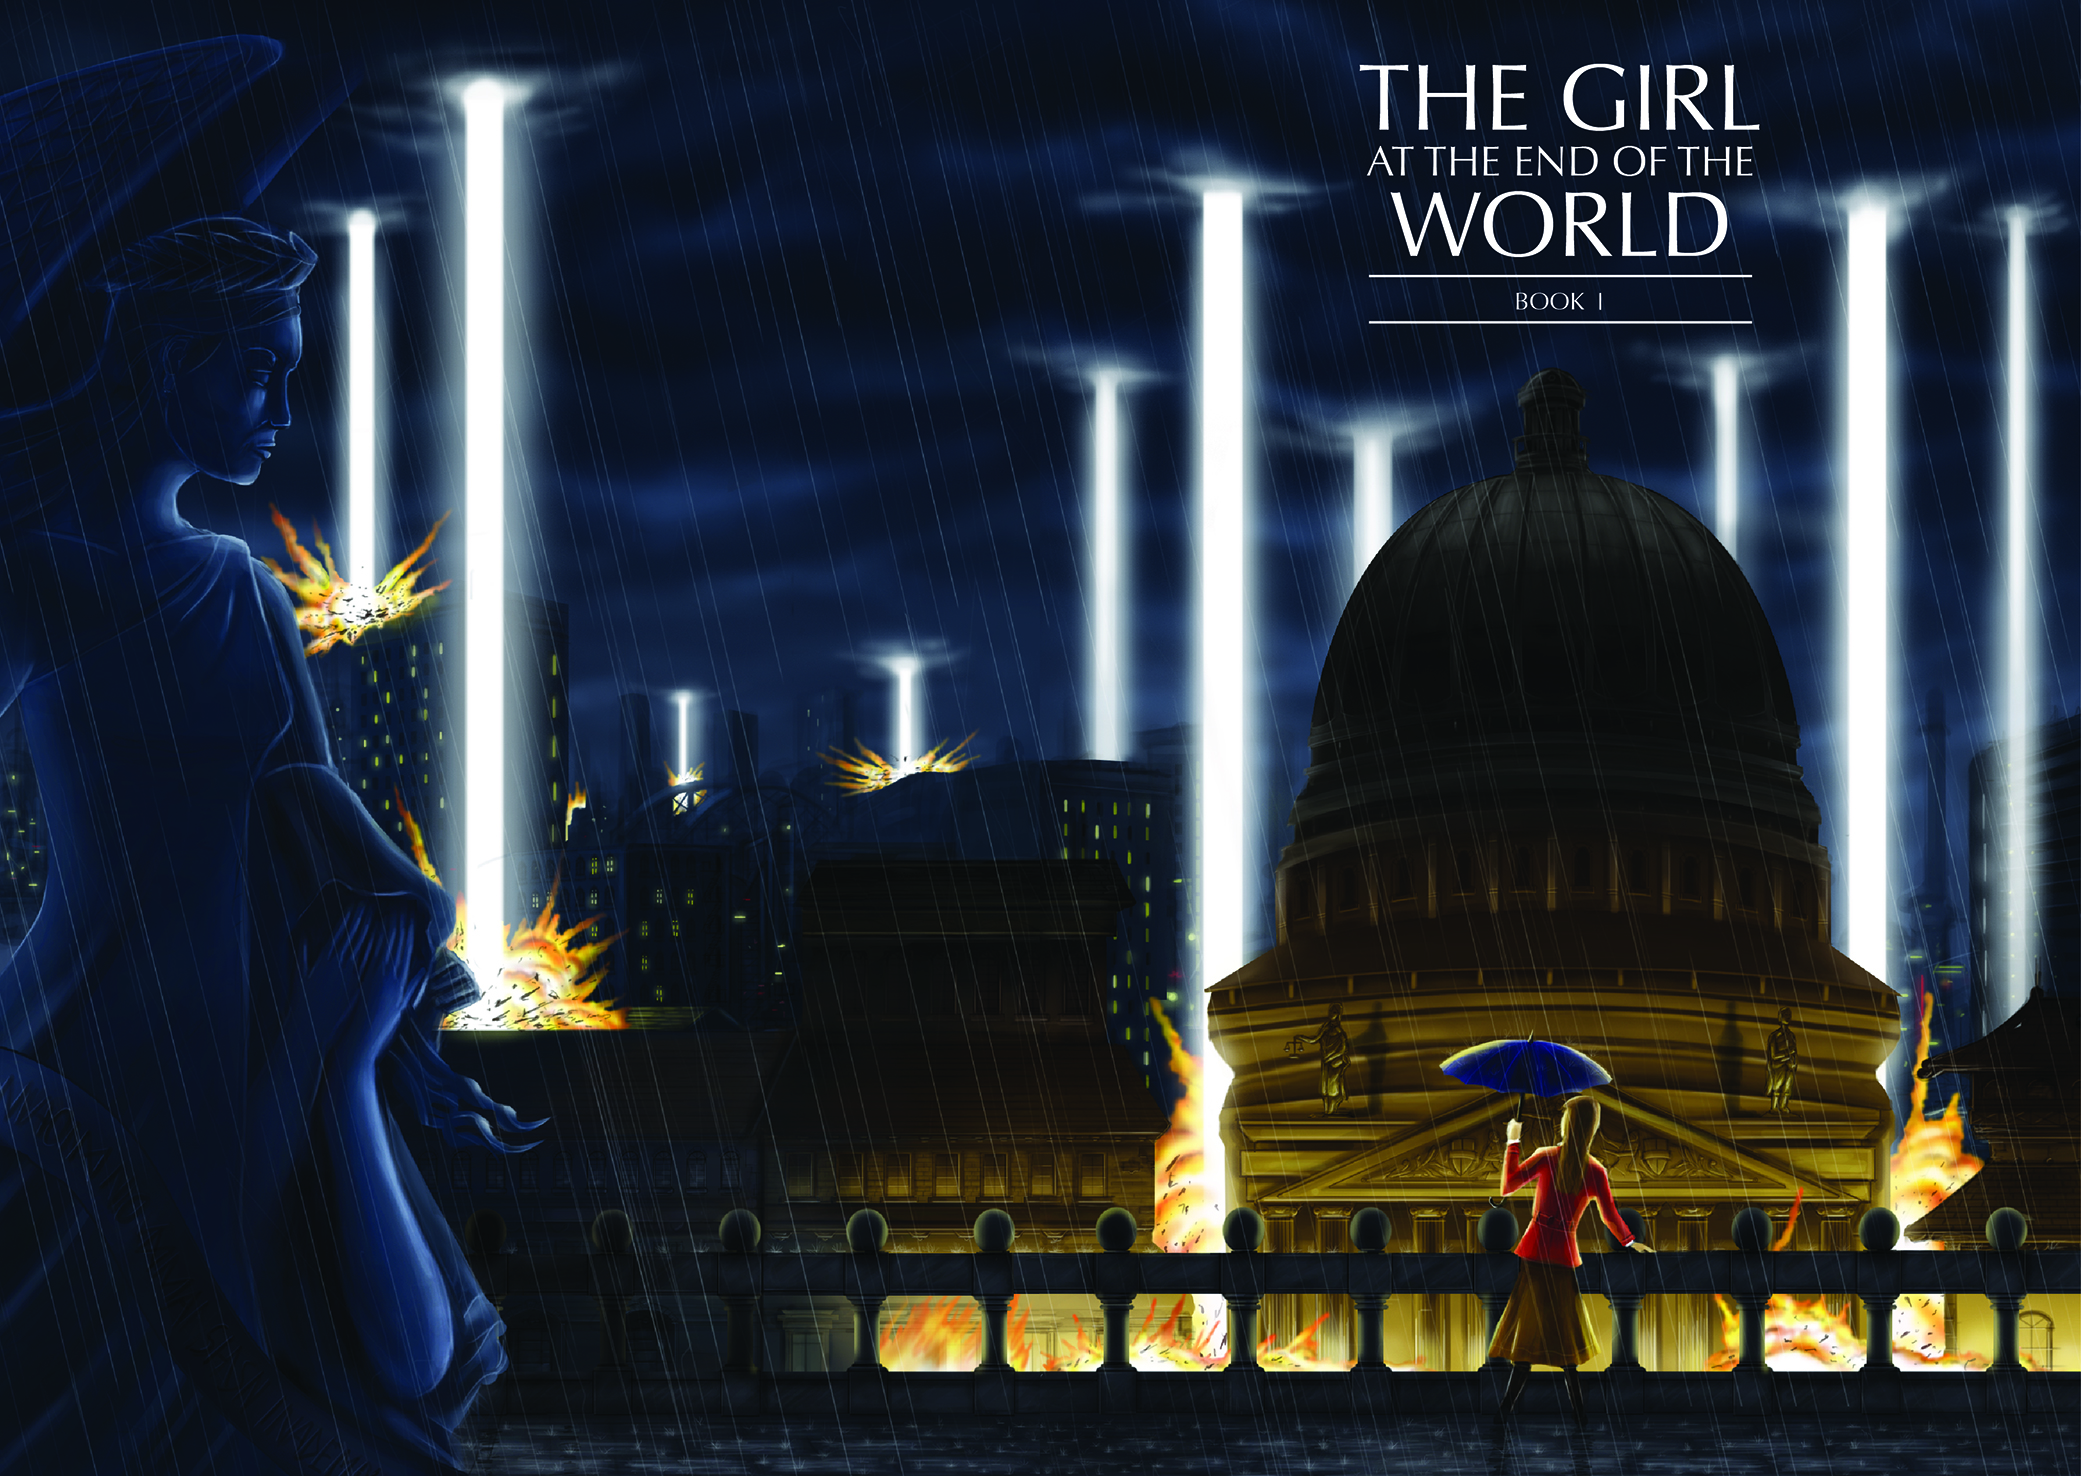 The Girl at the End of the Wold Vol 1